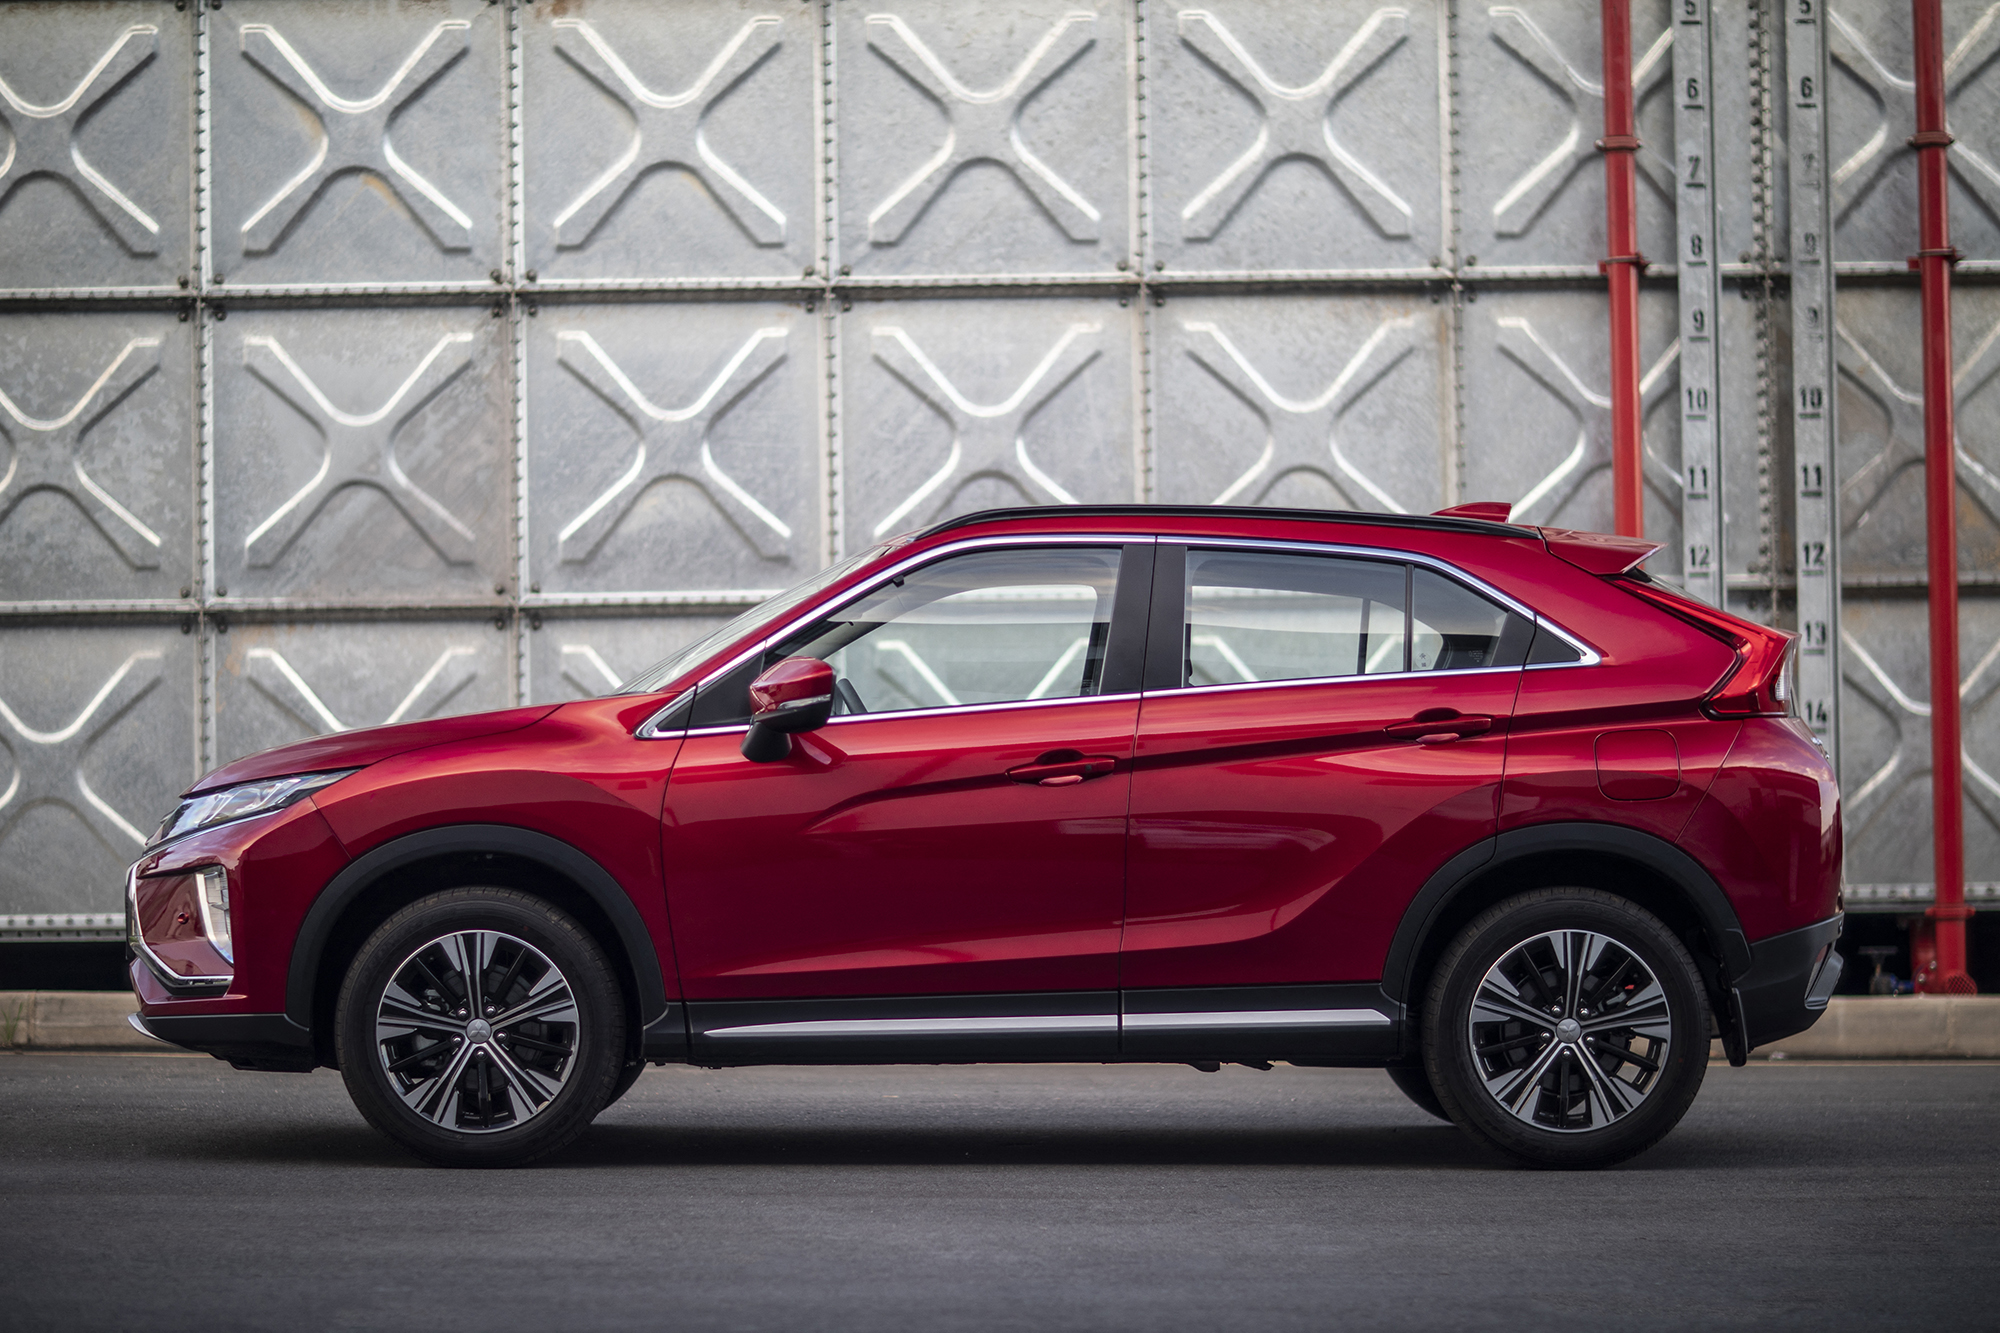 Mitsubishi Eclipse Cross 2 0: A welcome touch of indivi